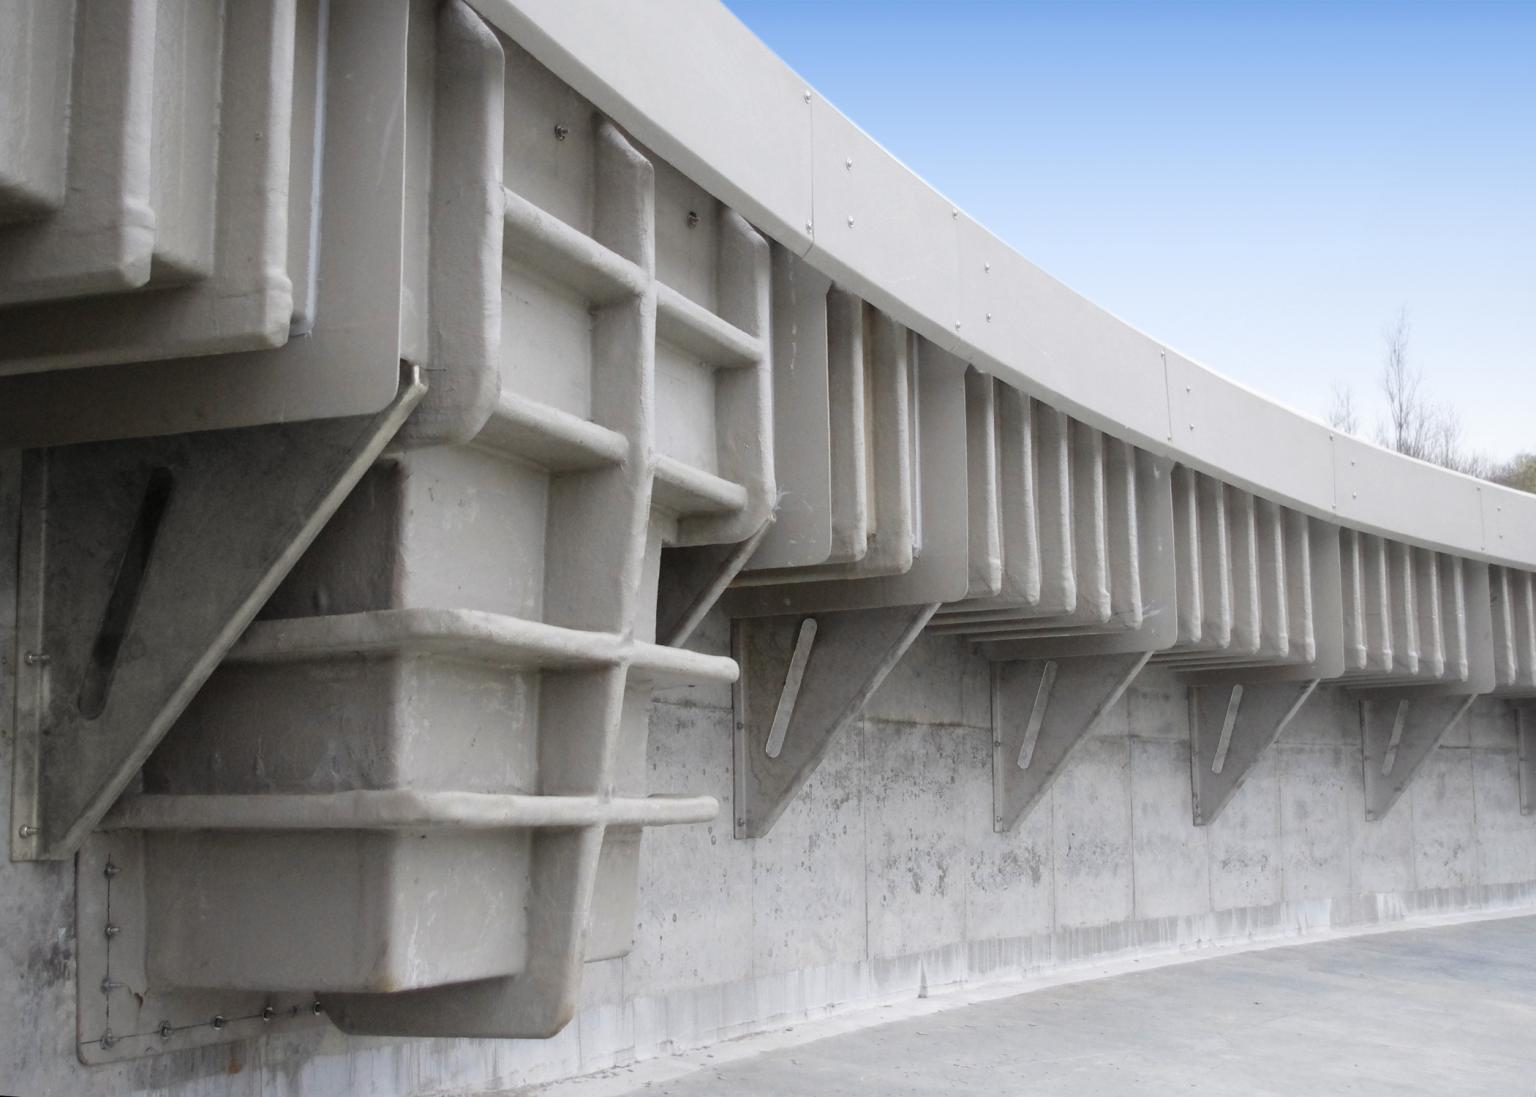 GRP is a versatile material that can be used in a wide range of installations, often as a direct replacement for more expensive traditional solutions